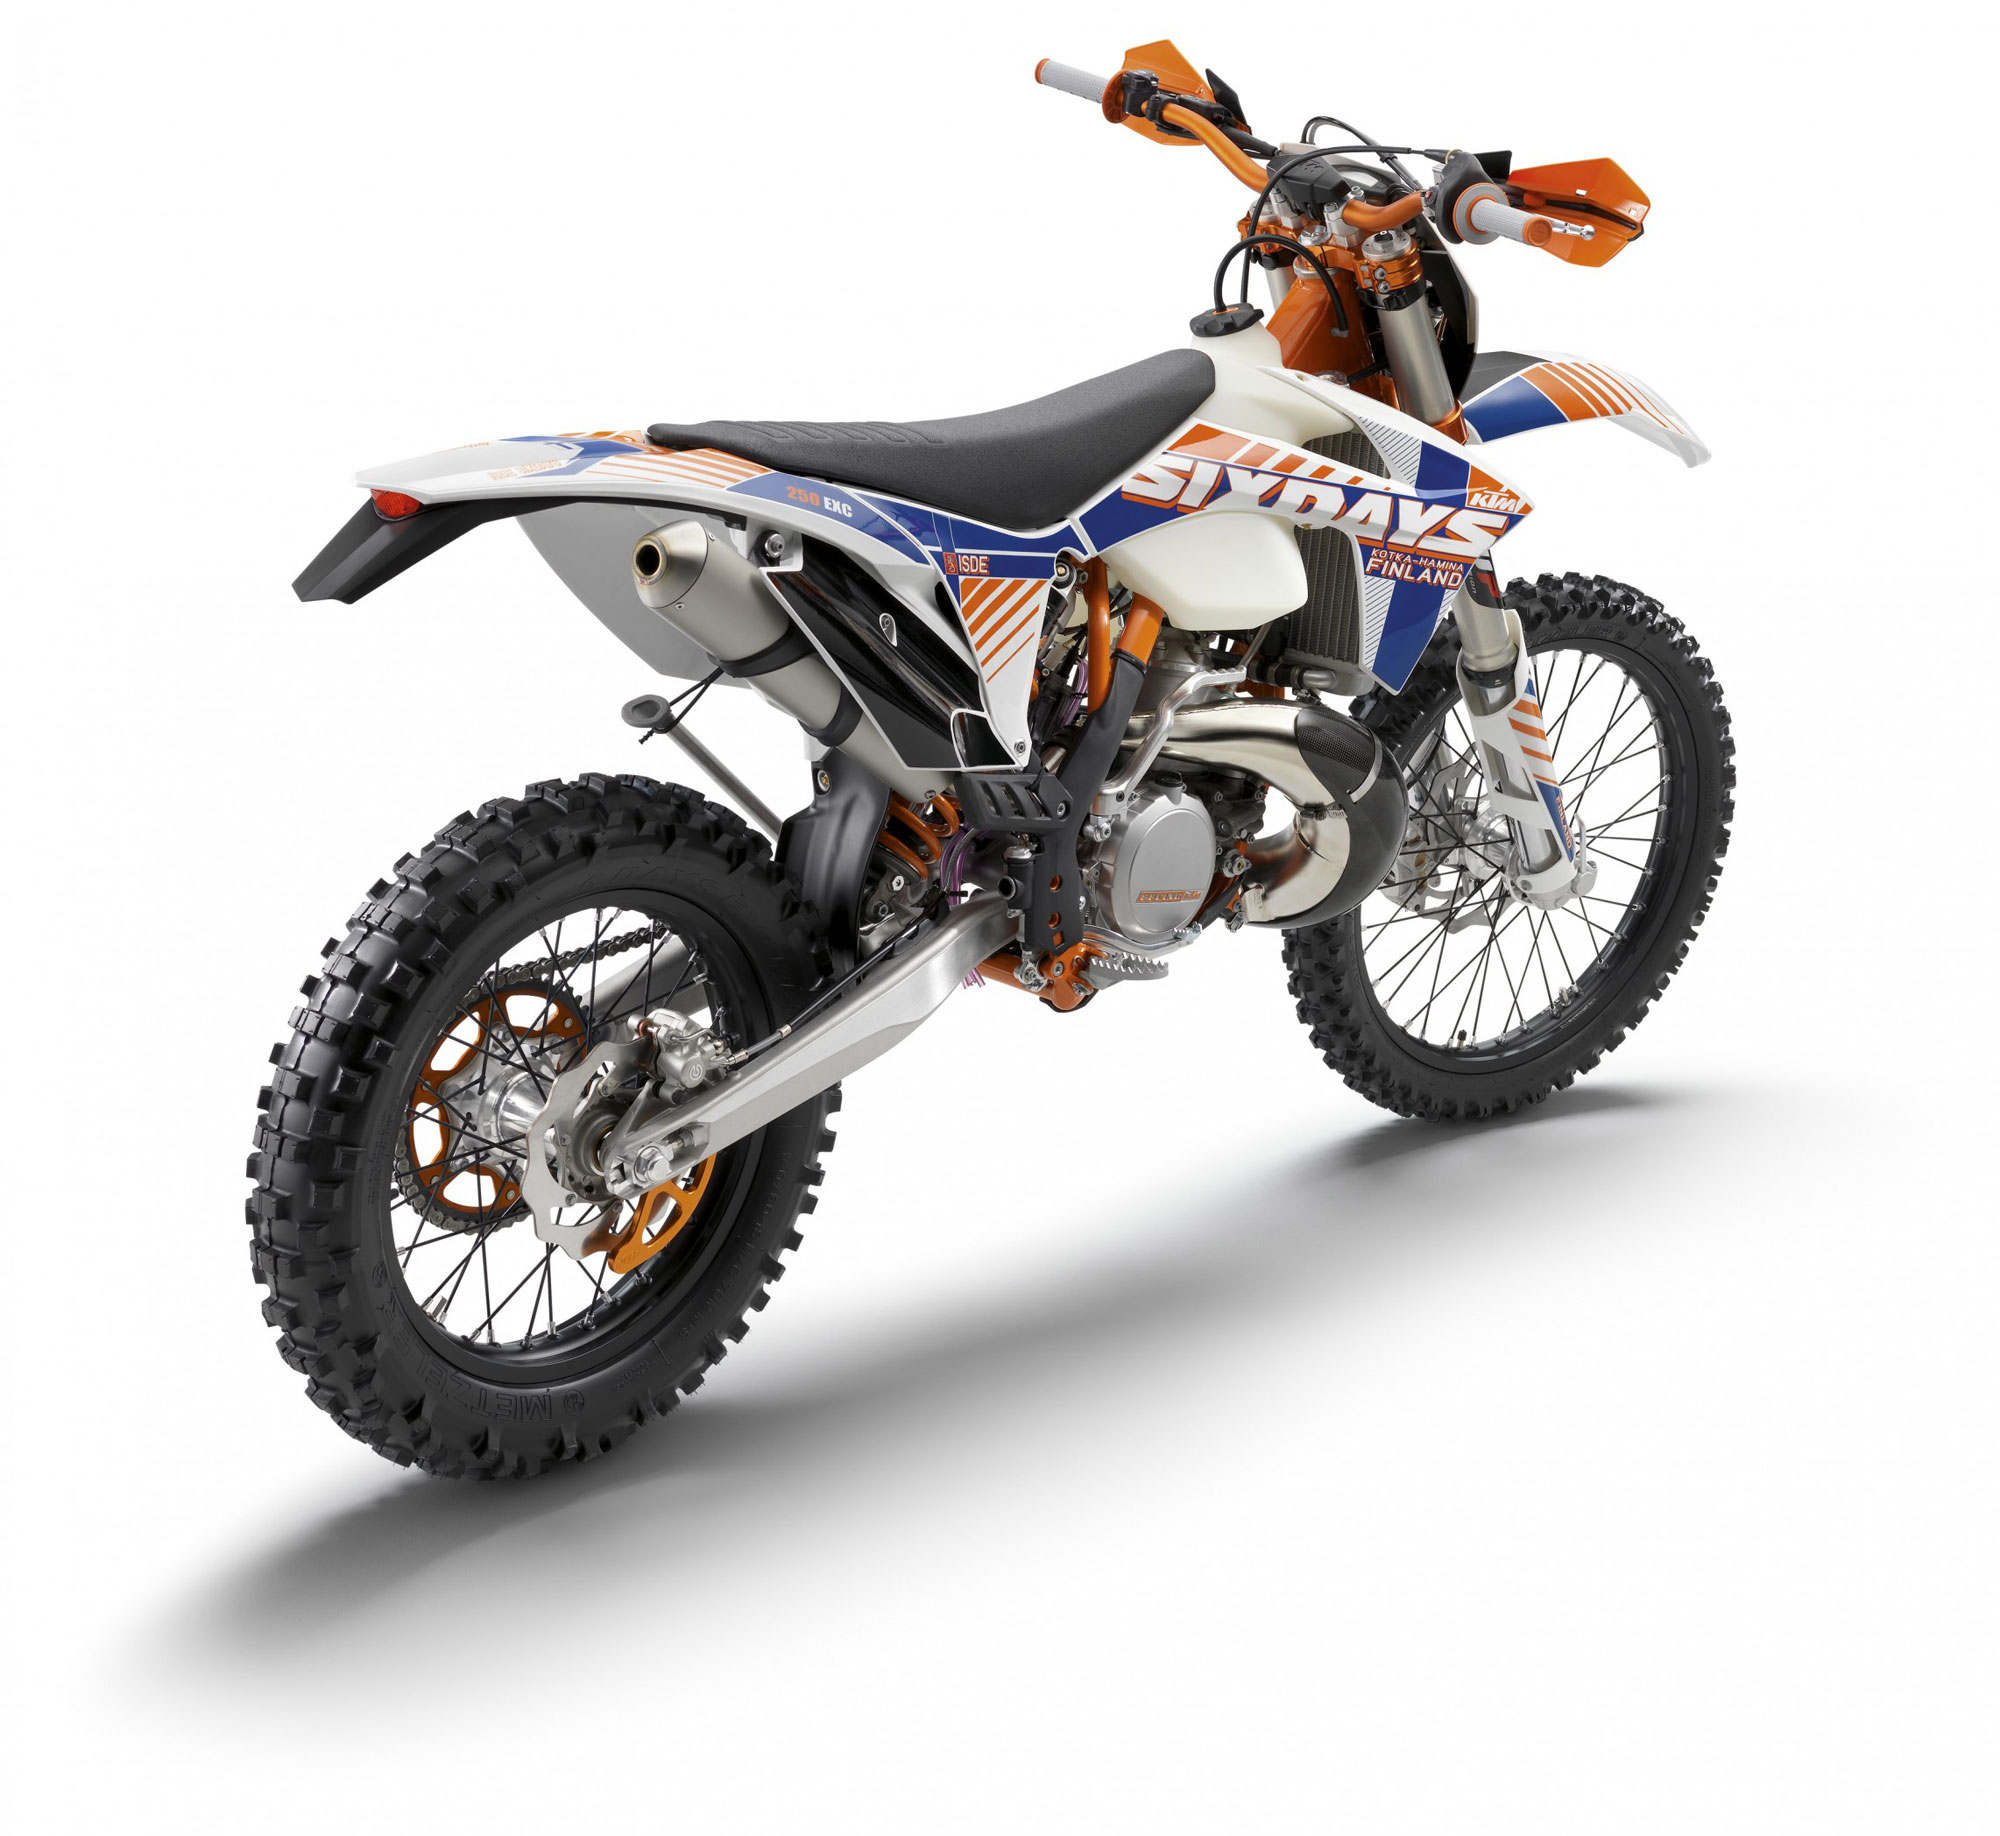 2012 ktm 250 exc six days review